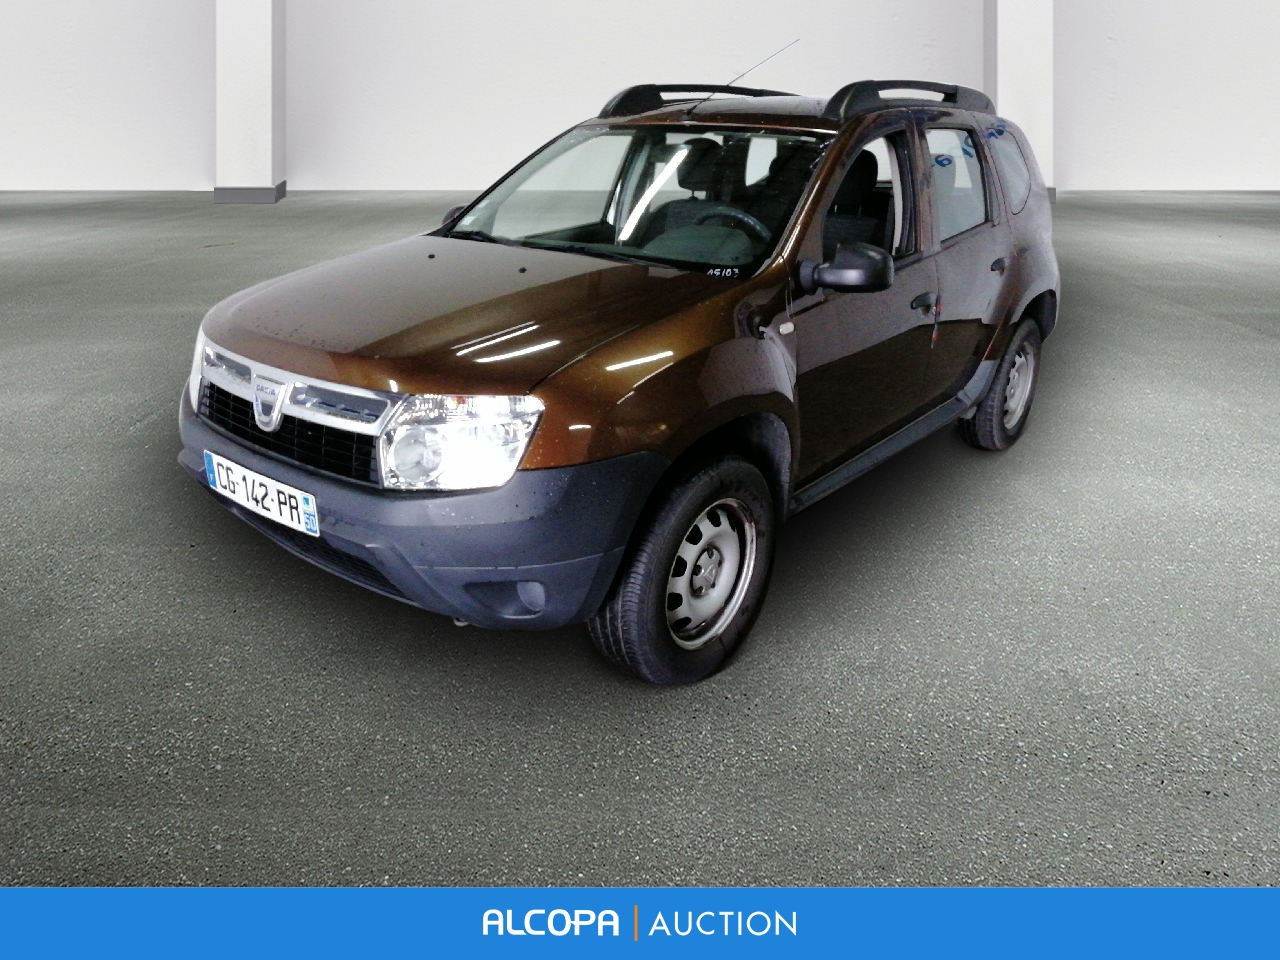 dacia duster duster 1 5 dci 110 4x2 ambiance tours alcopa auction. Black Bedroom Furniture Sets. Home Design Ideas